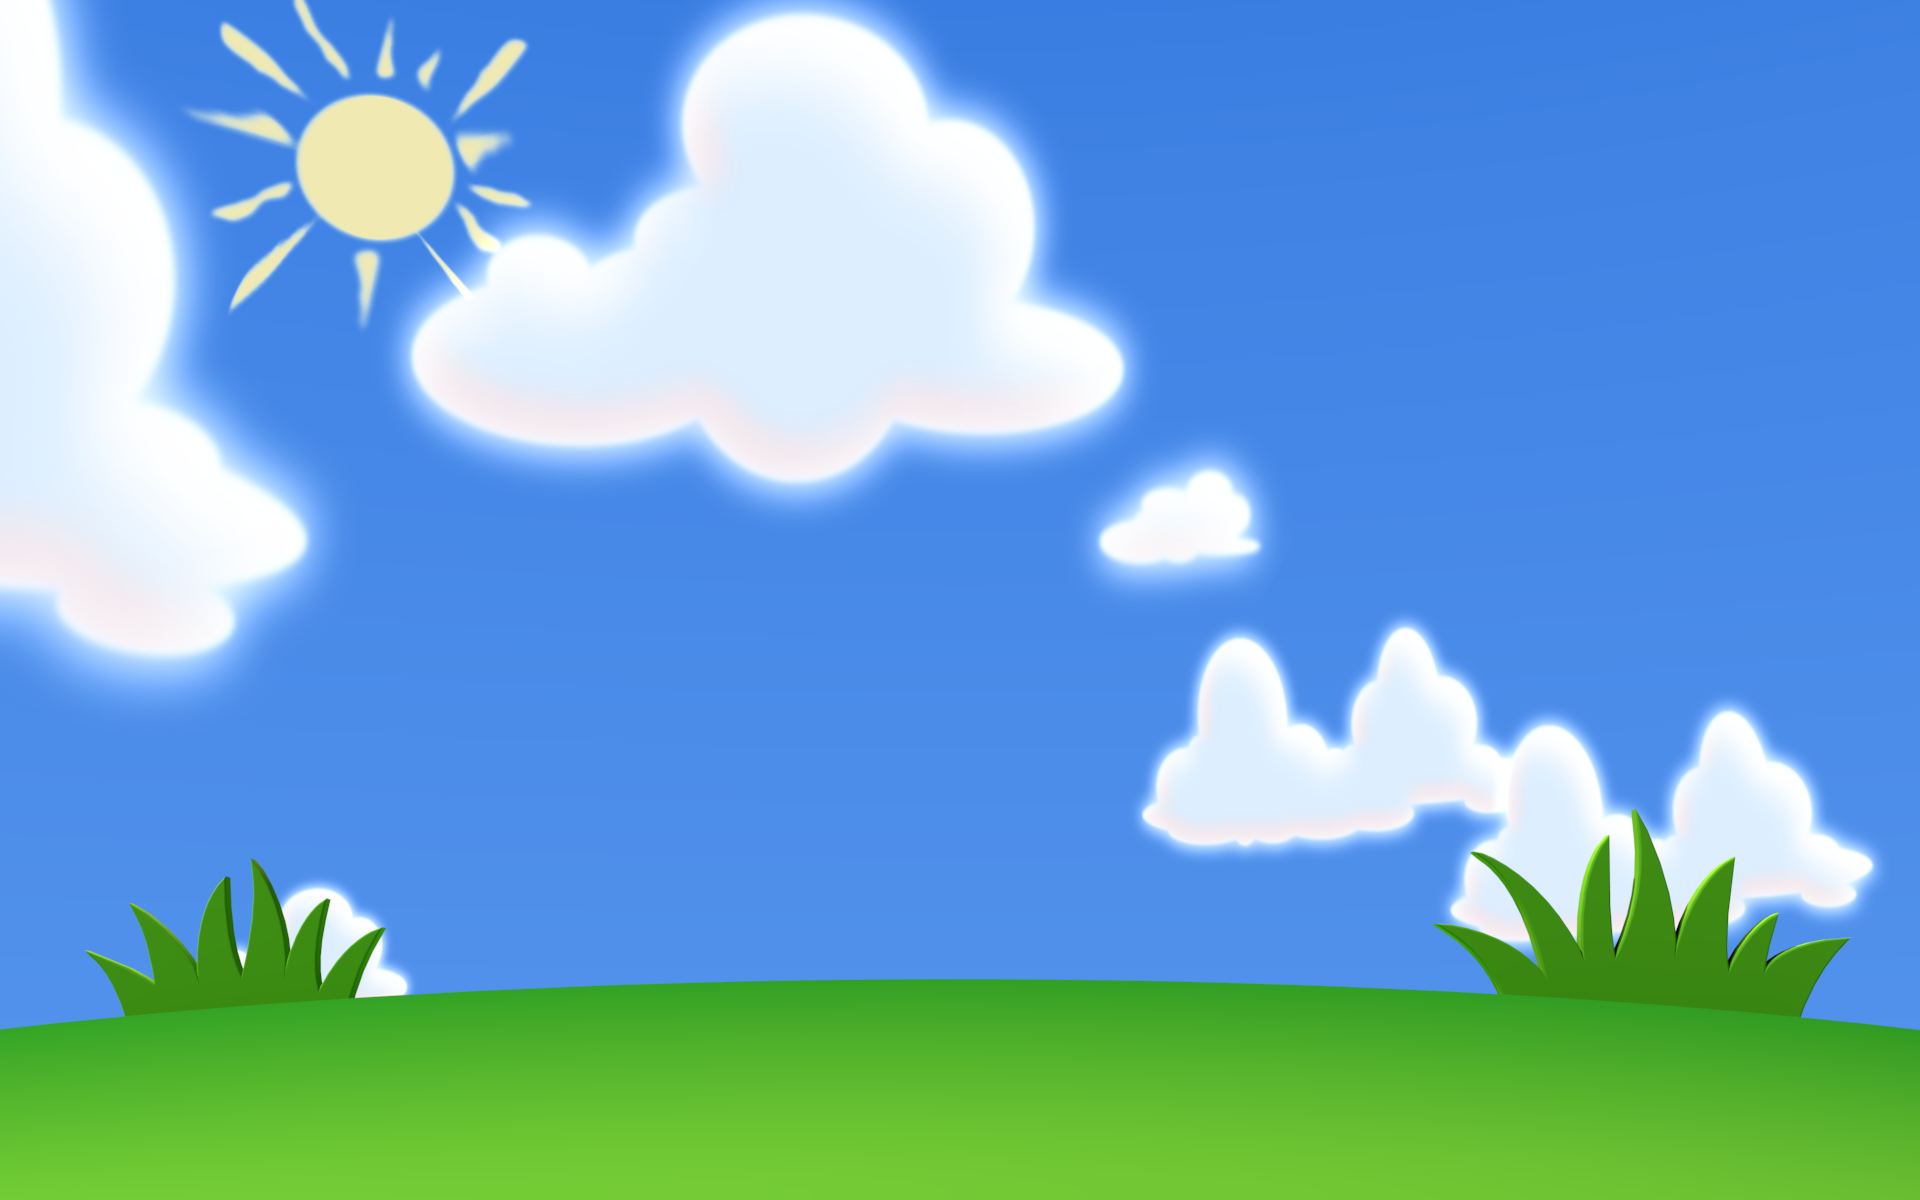 Sky Clipart & Look At Clip Art Images - ClipartLook